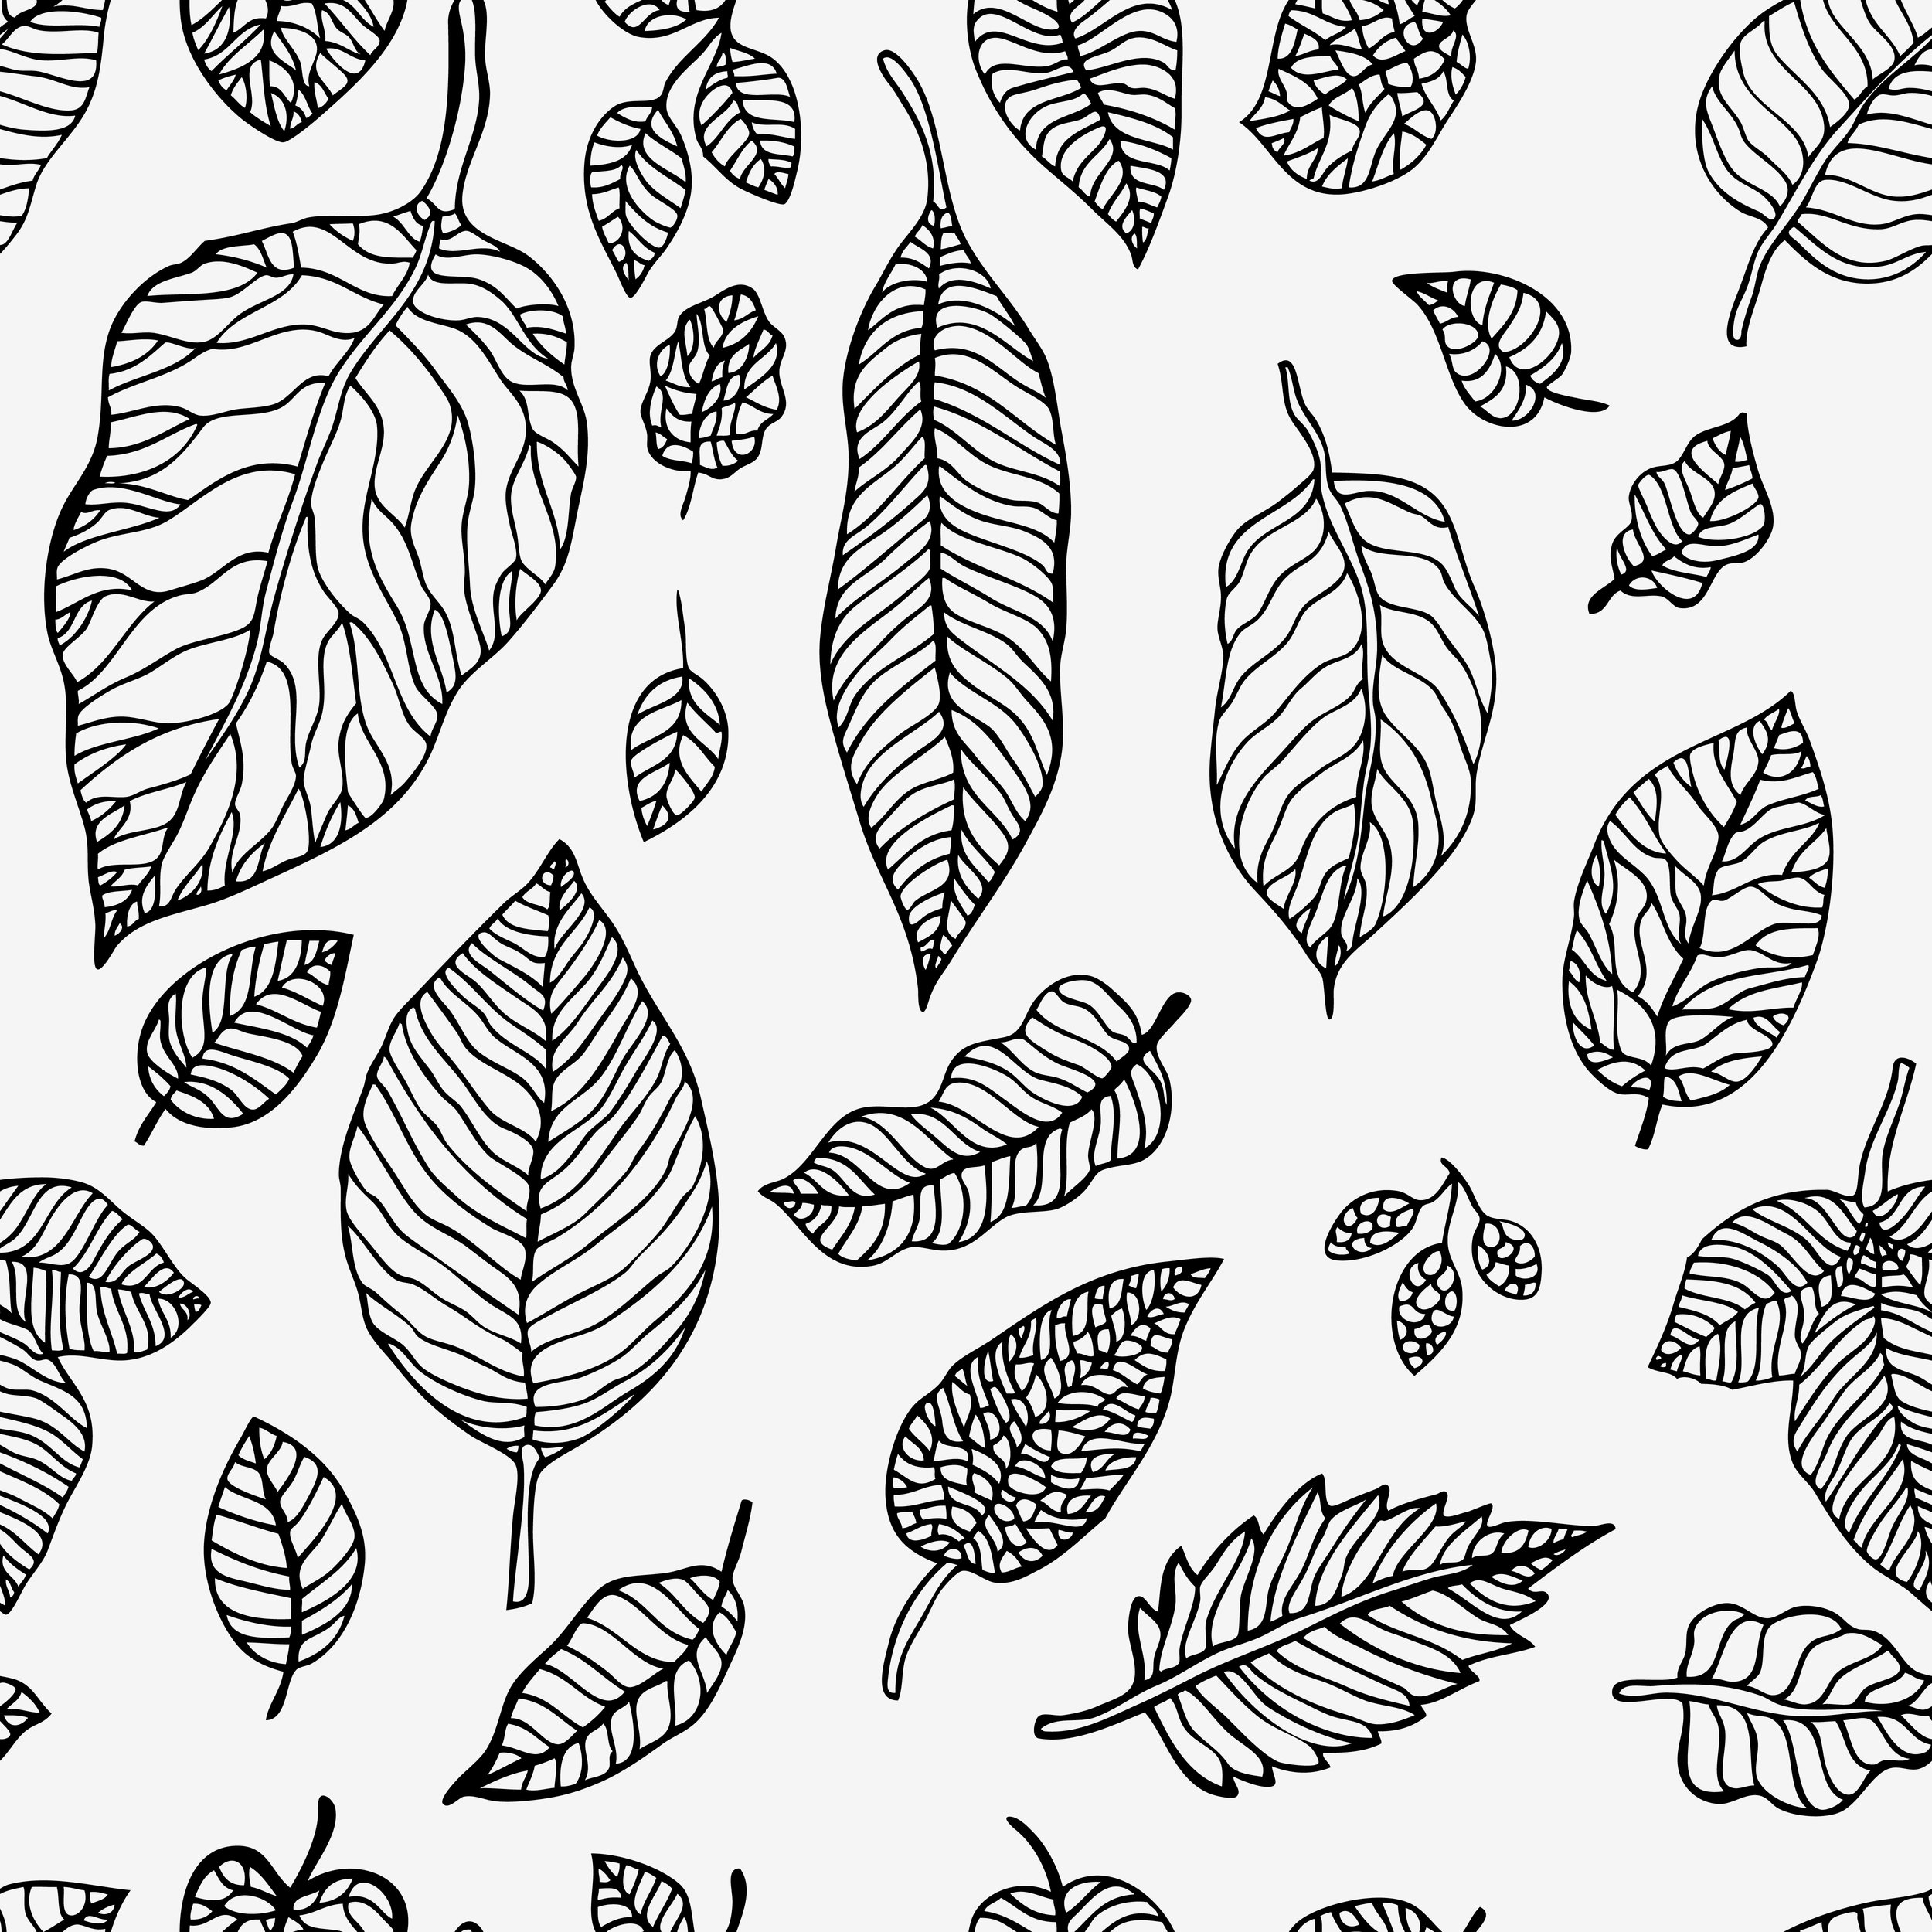 Leaves pattern bw.jpg